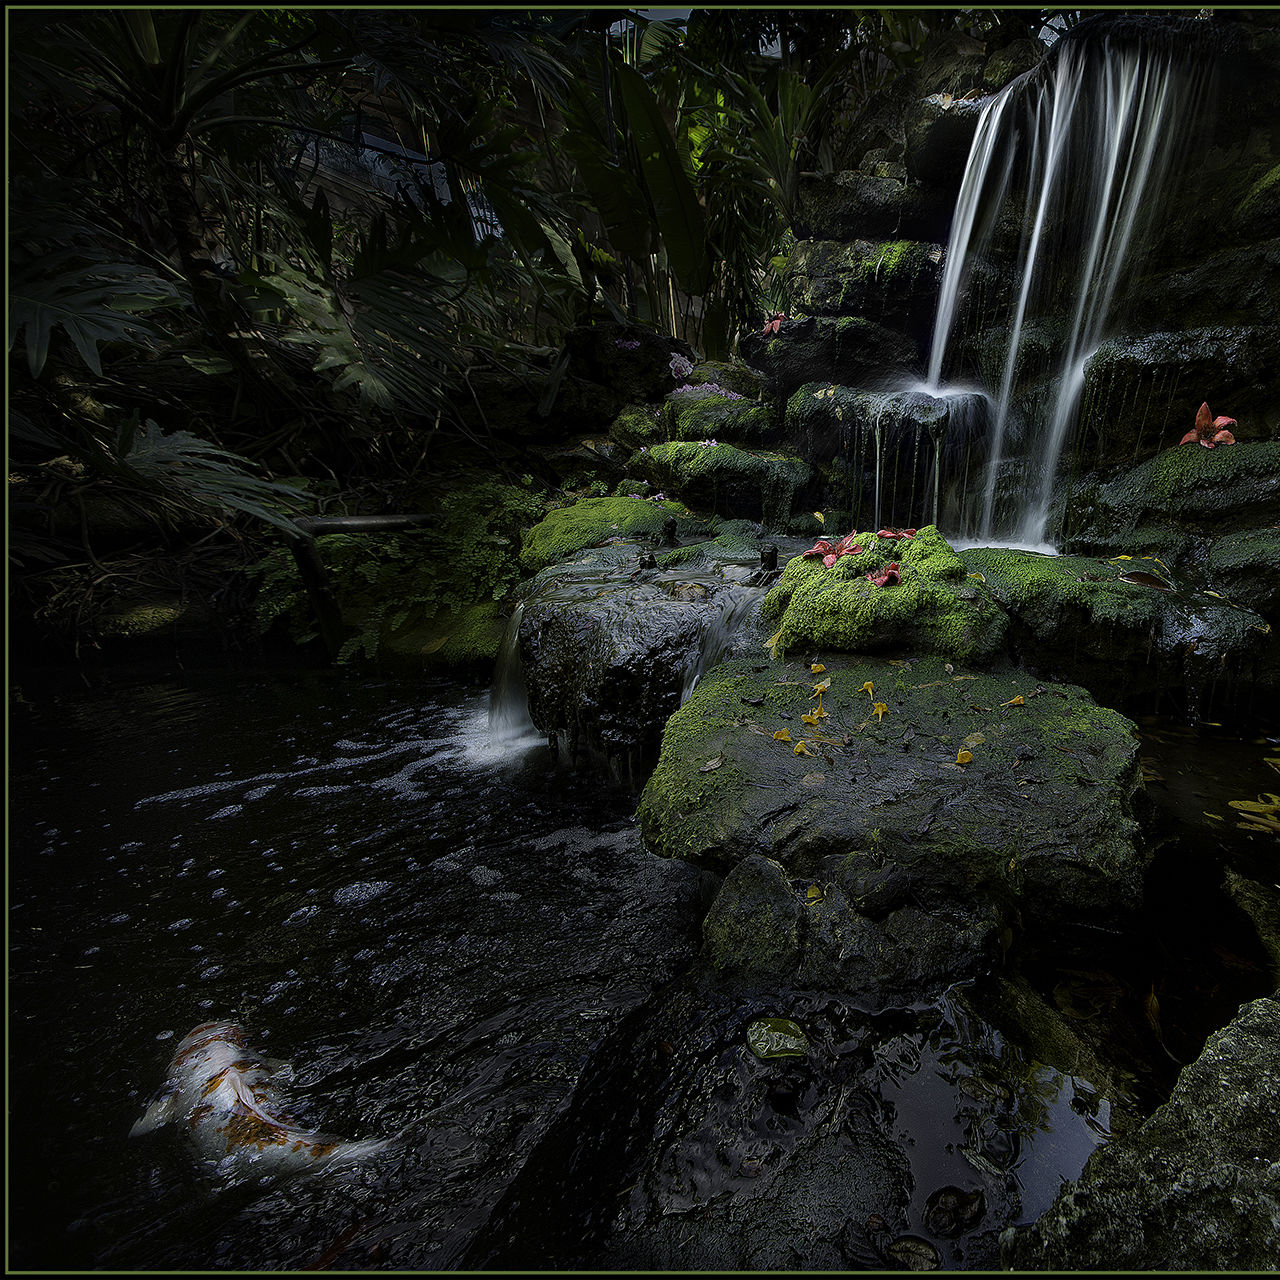 Selby waterfall best of show 2016 jc zeiss sm hfkyoc